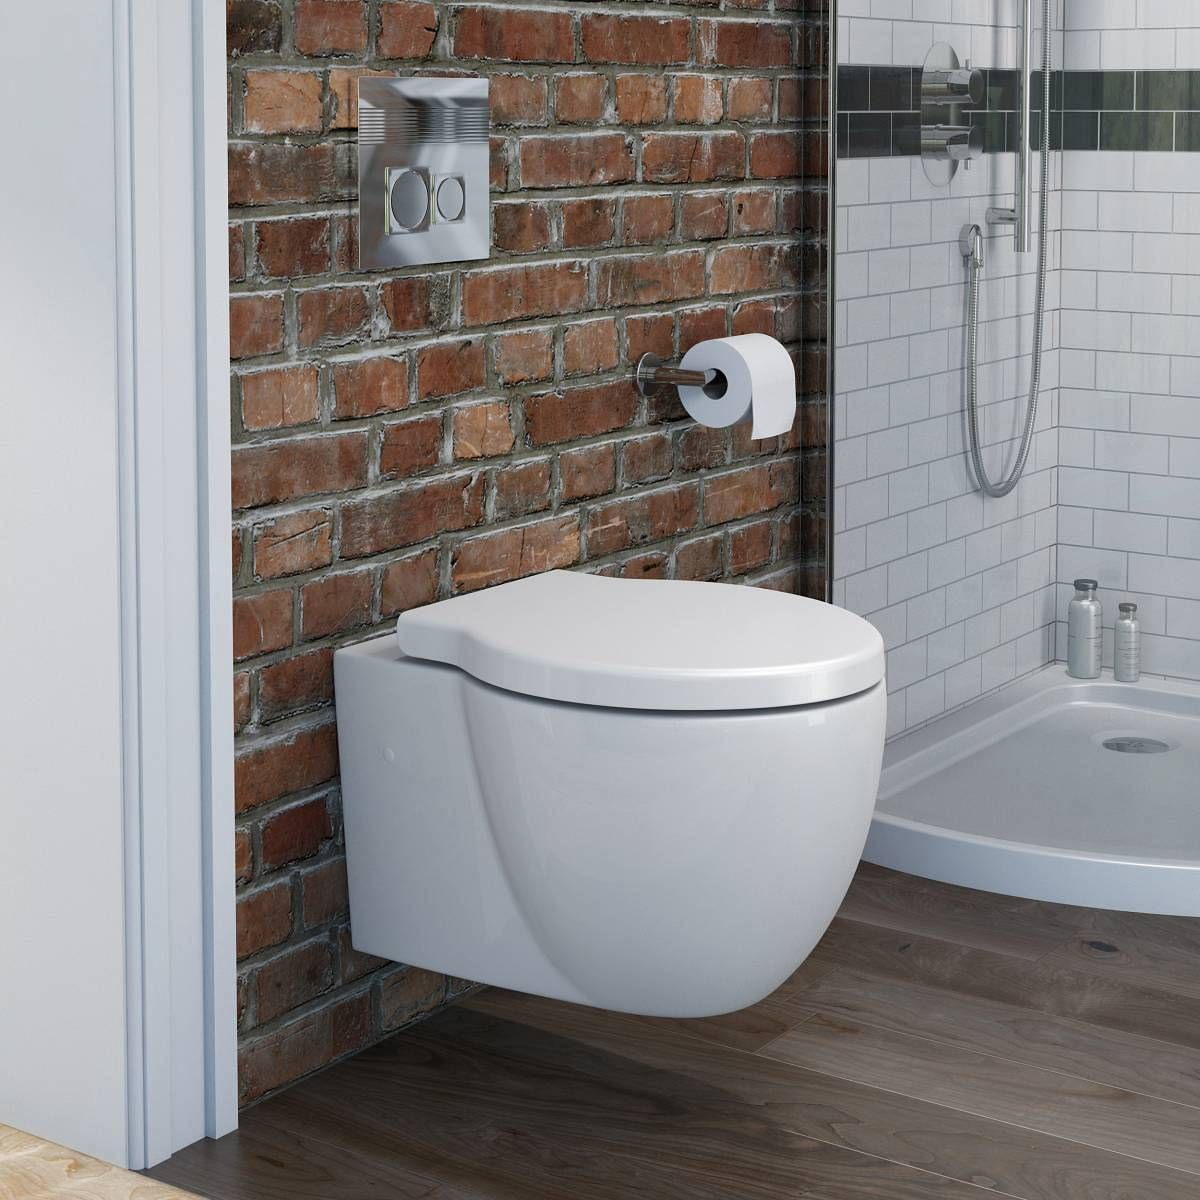 Wall hung bathroom suites - Maine Wall Hung Toilet Inc Luxury Soft Close Seat Victoria Plumb